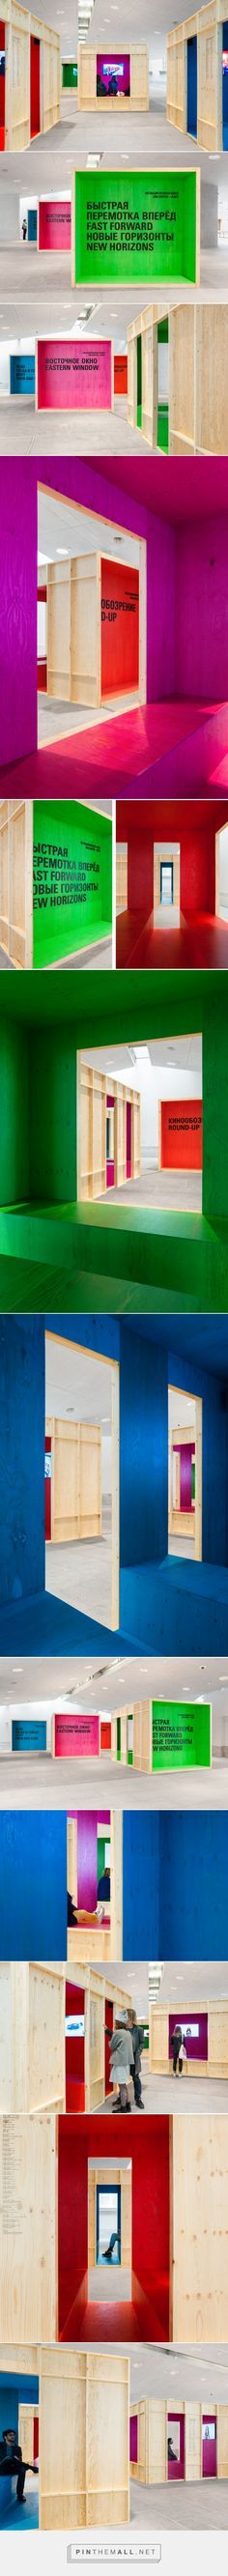 """Cubos y color. <a class=""""pintag searchlink"""" data-query=""""%23exhibition"""" data-type=""""hashtag"""" href=""""/search/?q=%23exhibition&rs=hashtag"""" rel=""""nofollow"""" title=""""#exhibition search Pinterest"""">#exhibition</a> design"""